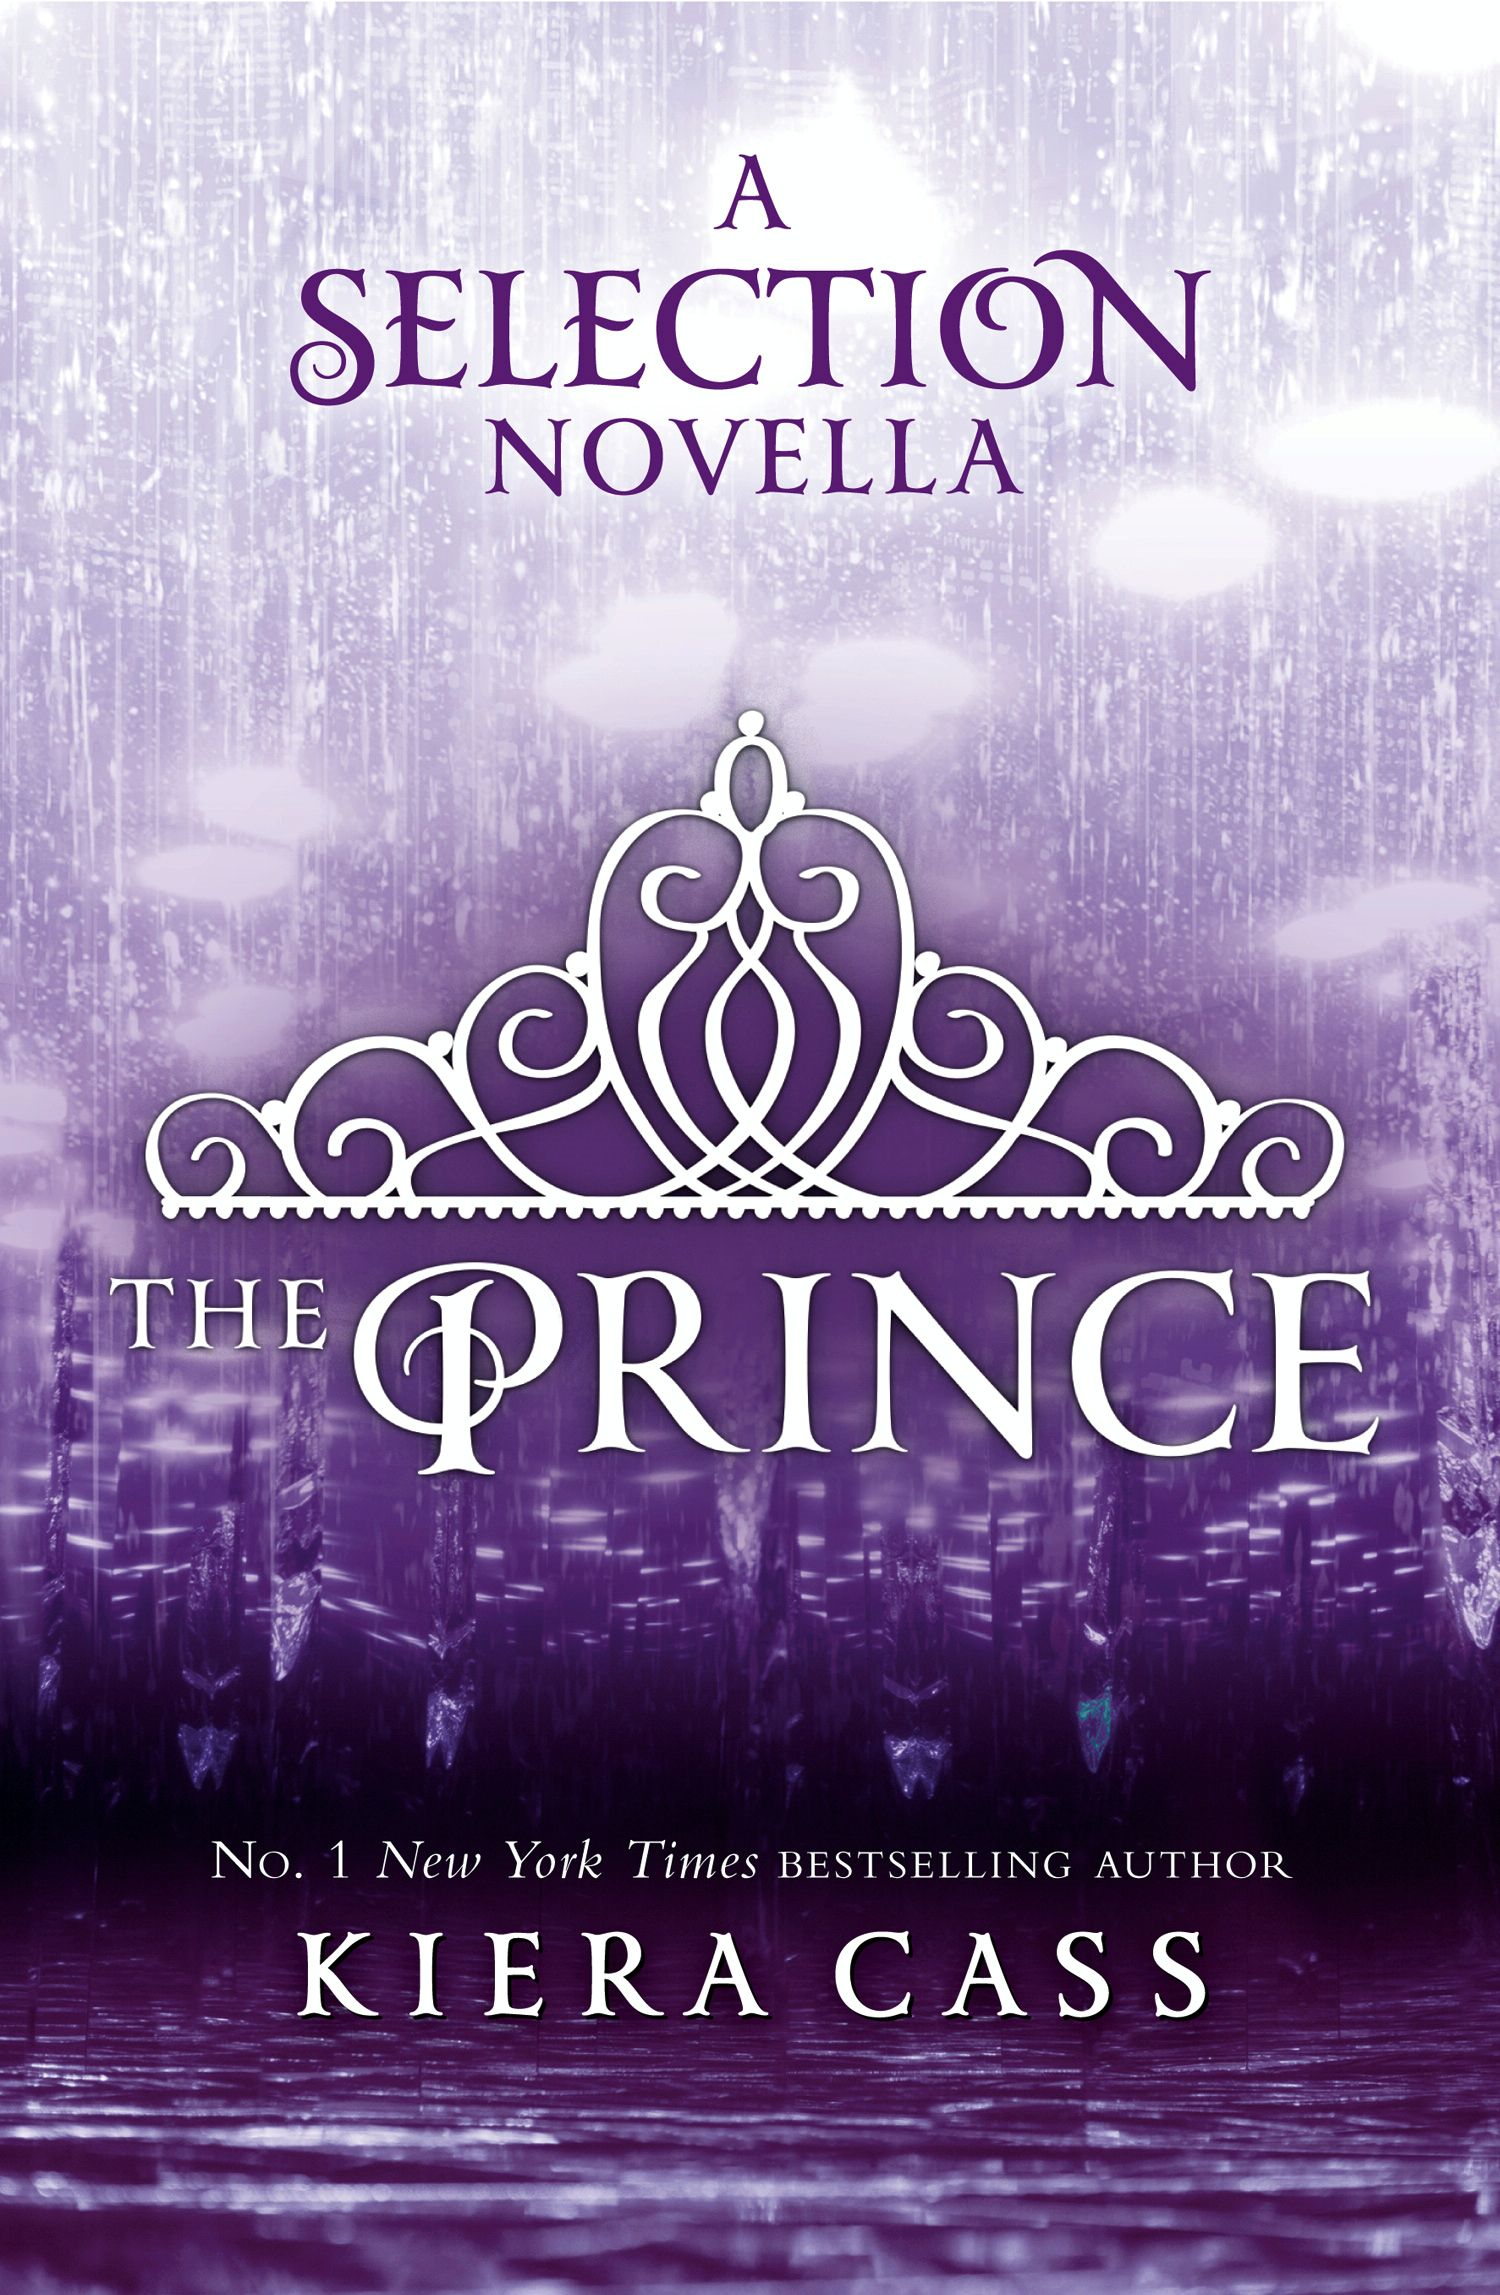 The Prince (The Selection)